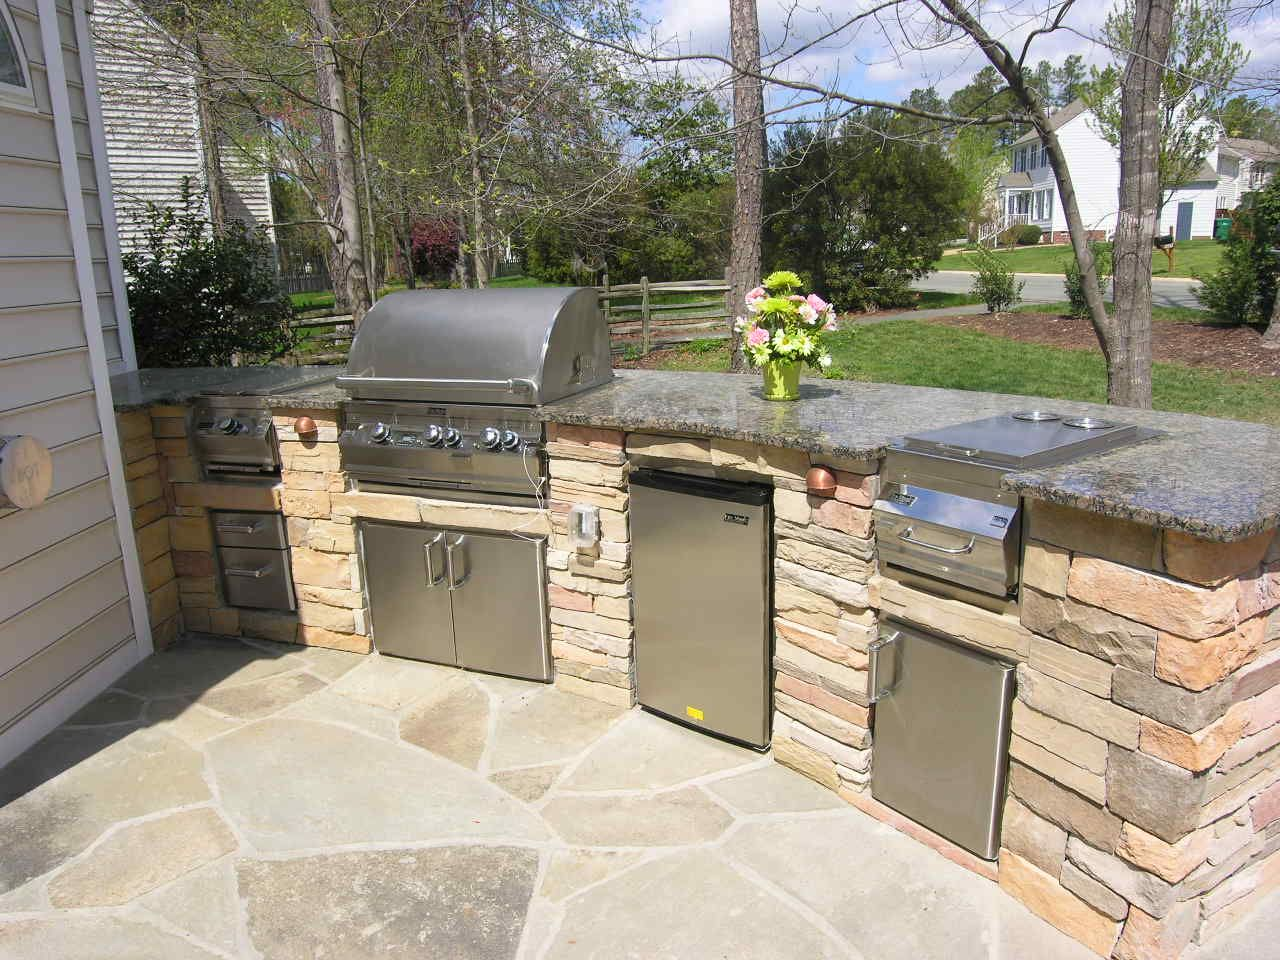 Outdoor Grill Design Ideas kitchen incredible outdoor kitchen ideas extra charming for backyard simply outdoor kitchen design Backyard Patio With Kitchen Ideas This Custom Outdoor Kitchen Design Has Space For Several Outdoor